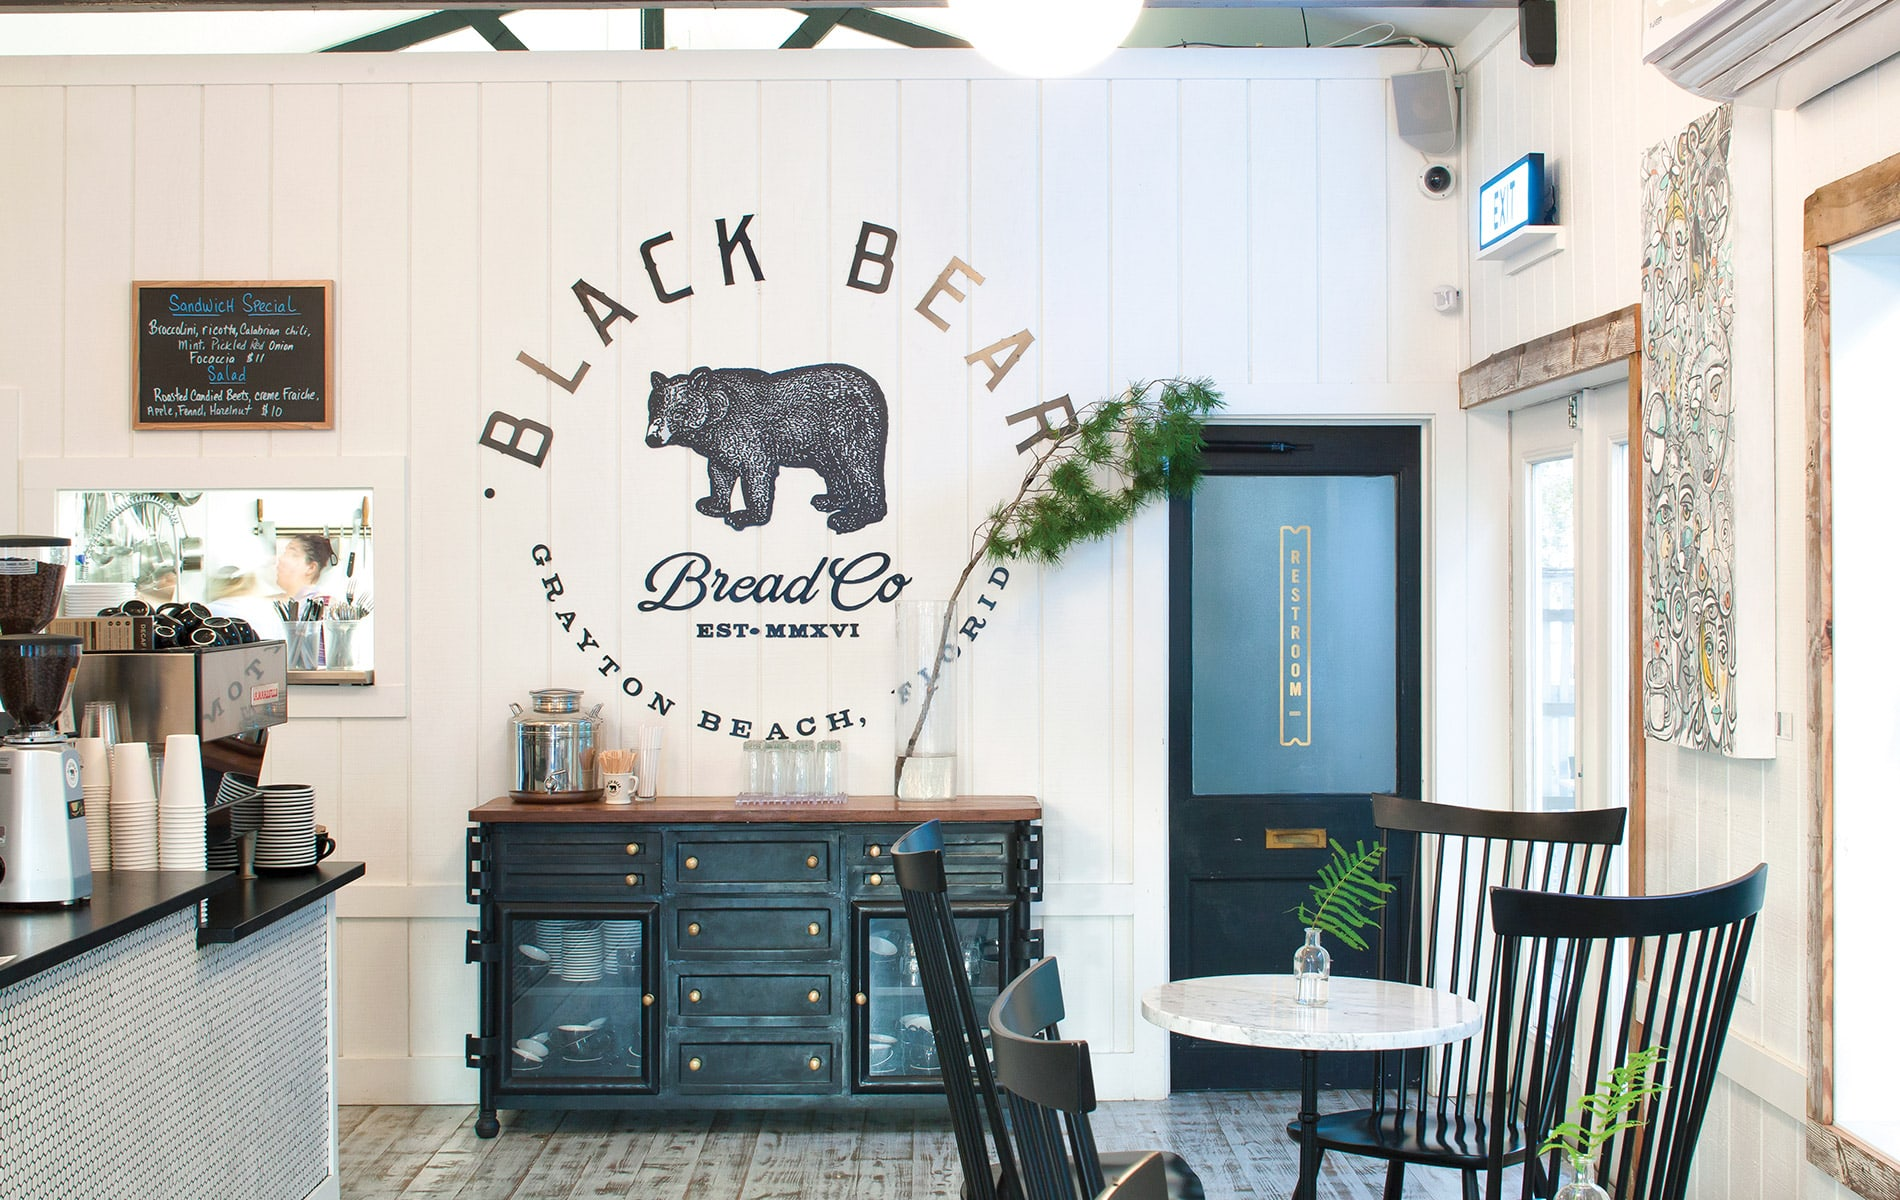 Black Bear Bread Co. in Grayton Beach, Florida